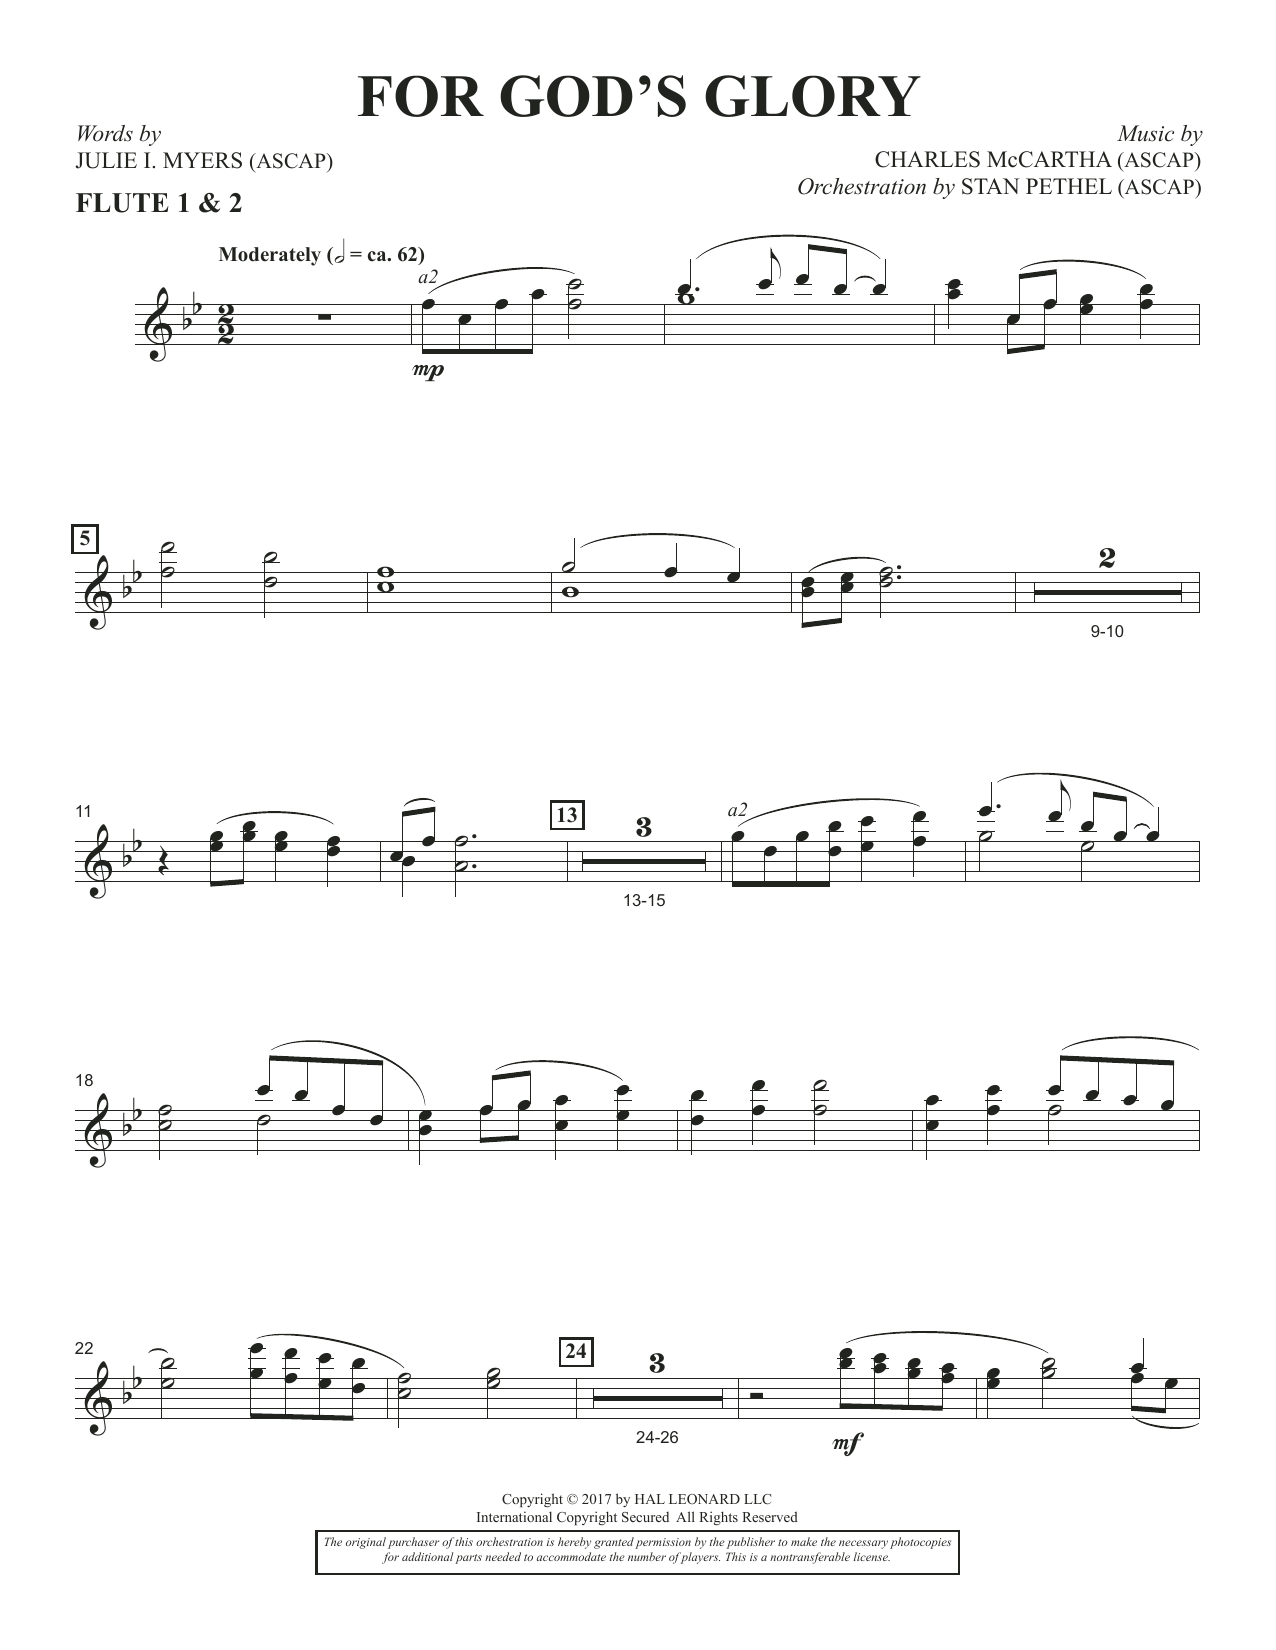 Charles McCartha For God's Glory - Flute 1 & 2 sheet music notes and chords. Download Printable PDF.